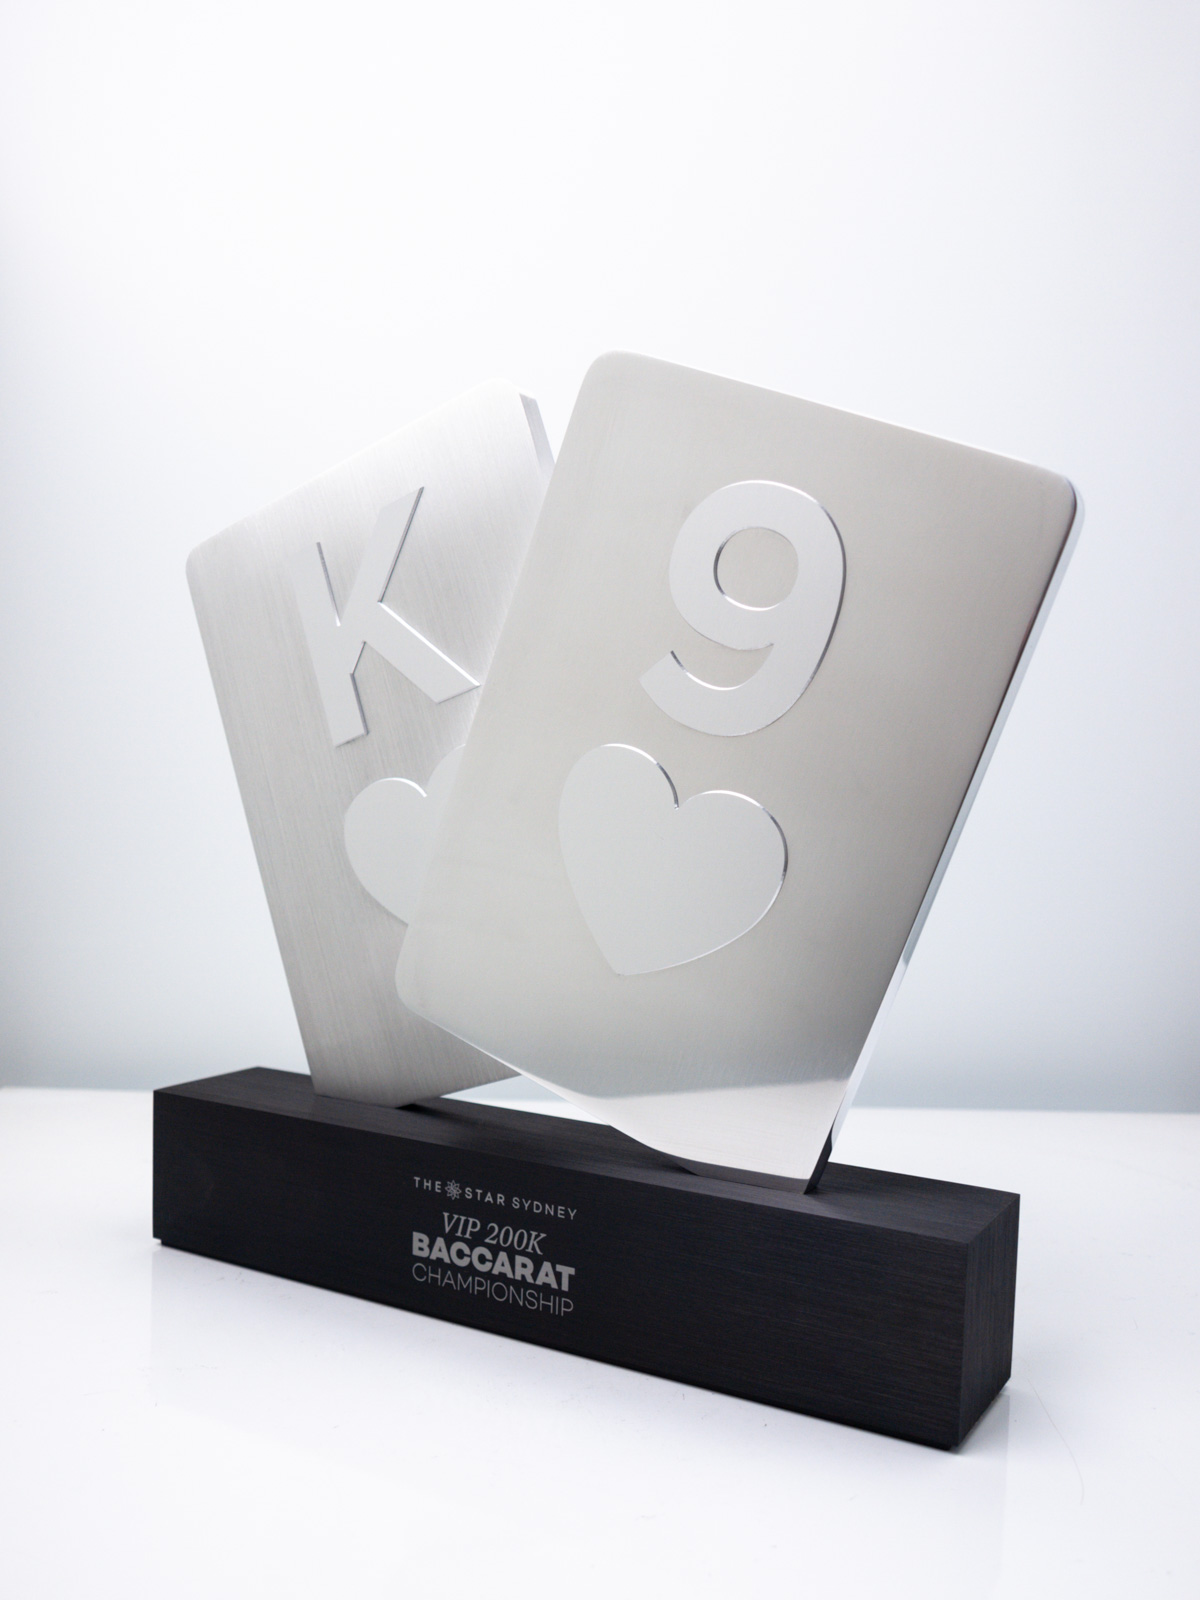 The Star Baccarat Championship Award Trophy